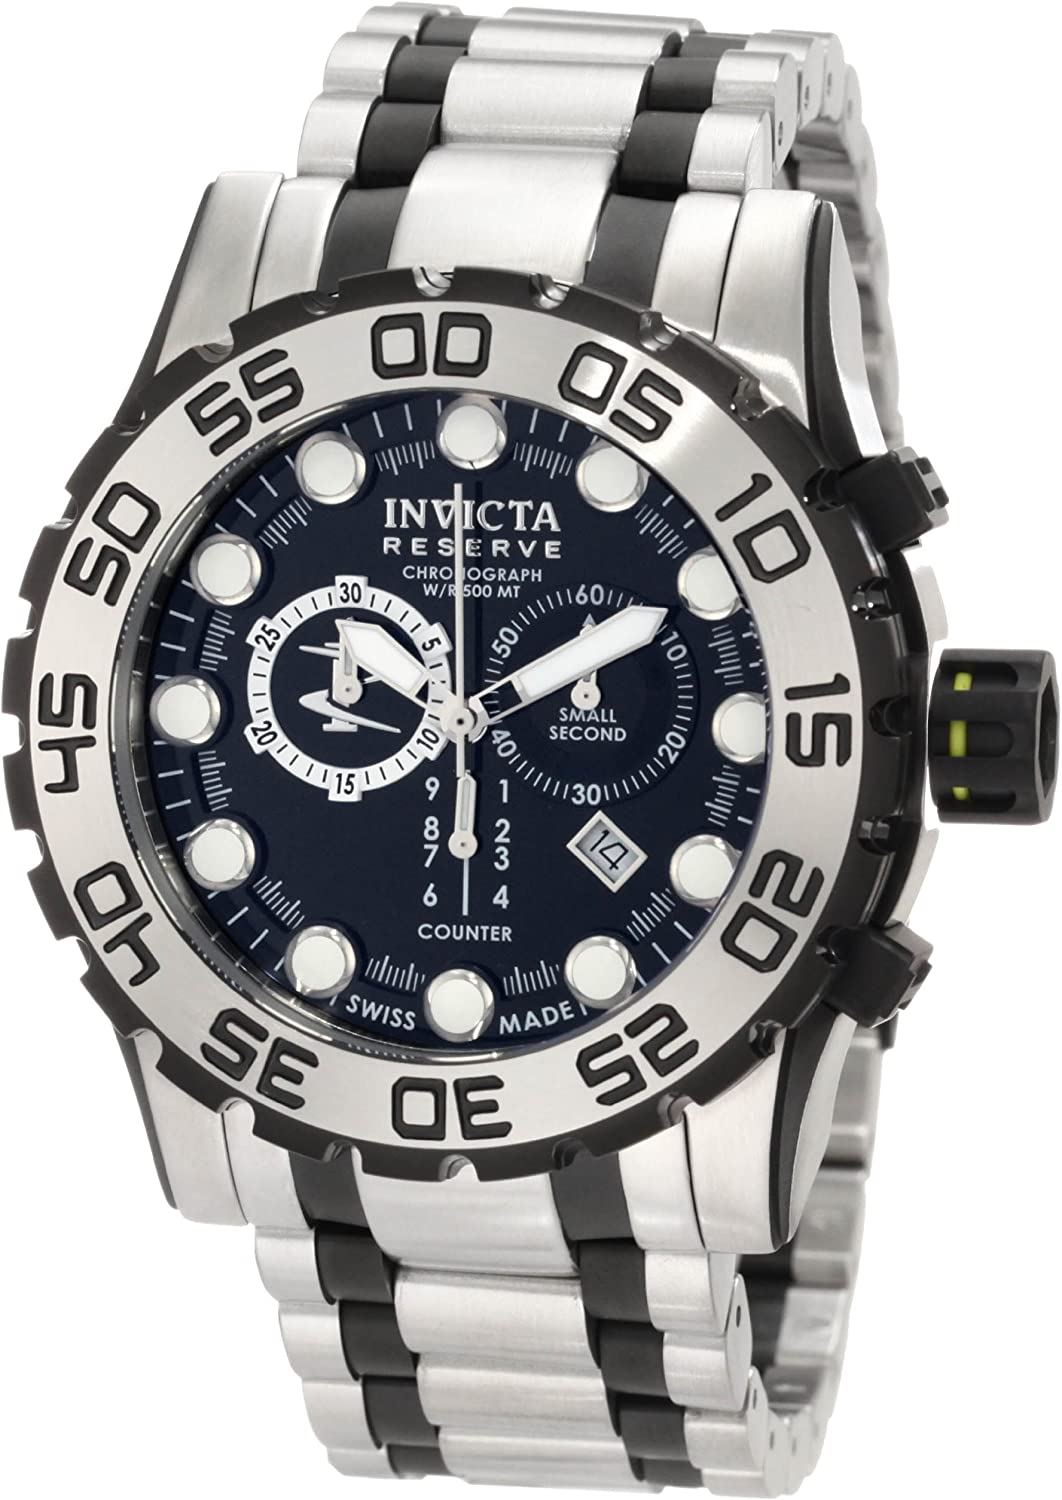 Invicta Men s 0814 Reserve Chronograph Black Dial Stainless Steel Watch